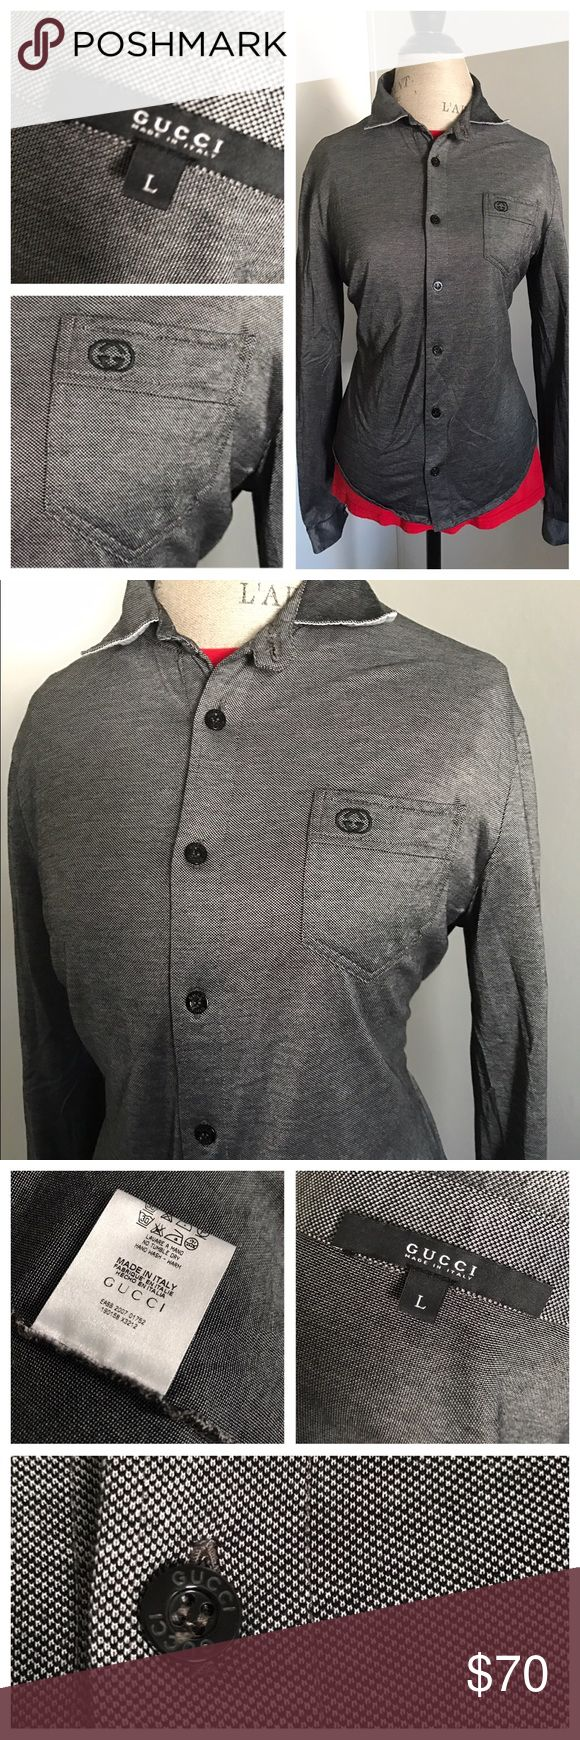 Gucci top Yes this is authentic it is a very comfortable top in very good condition it has a black sort of denim look to it it's a size large I would say petite large and medium fits best Gucci Tops Button Down Shirts